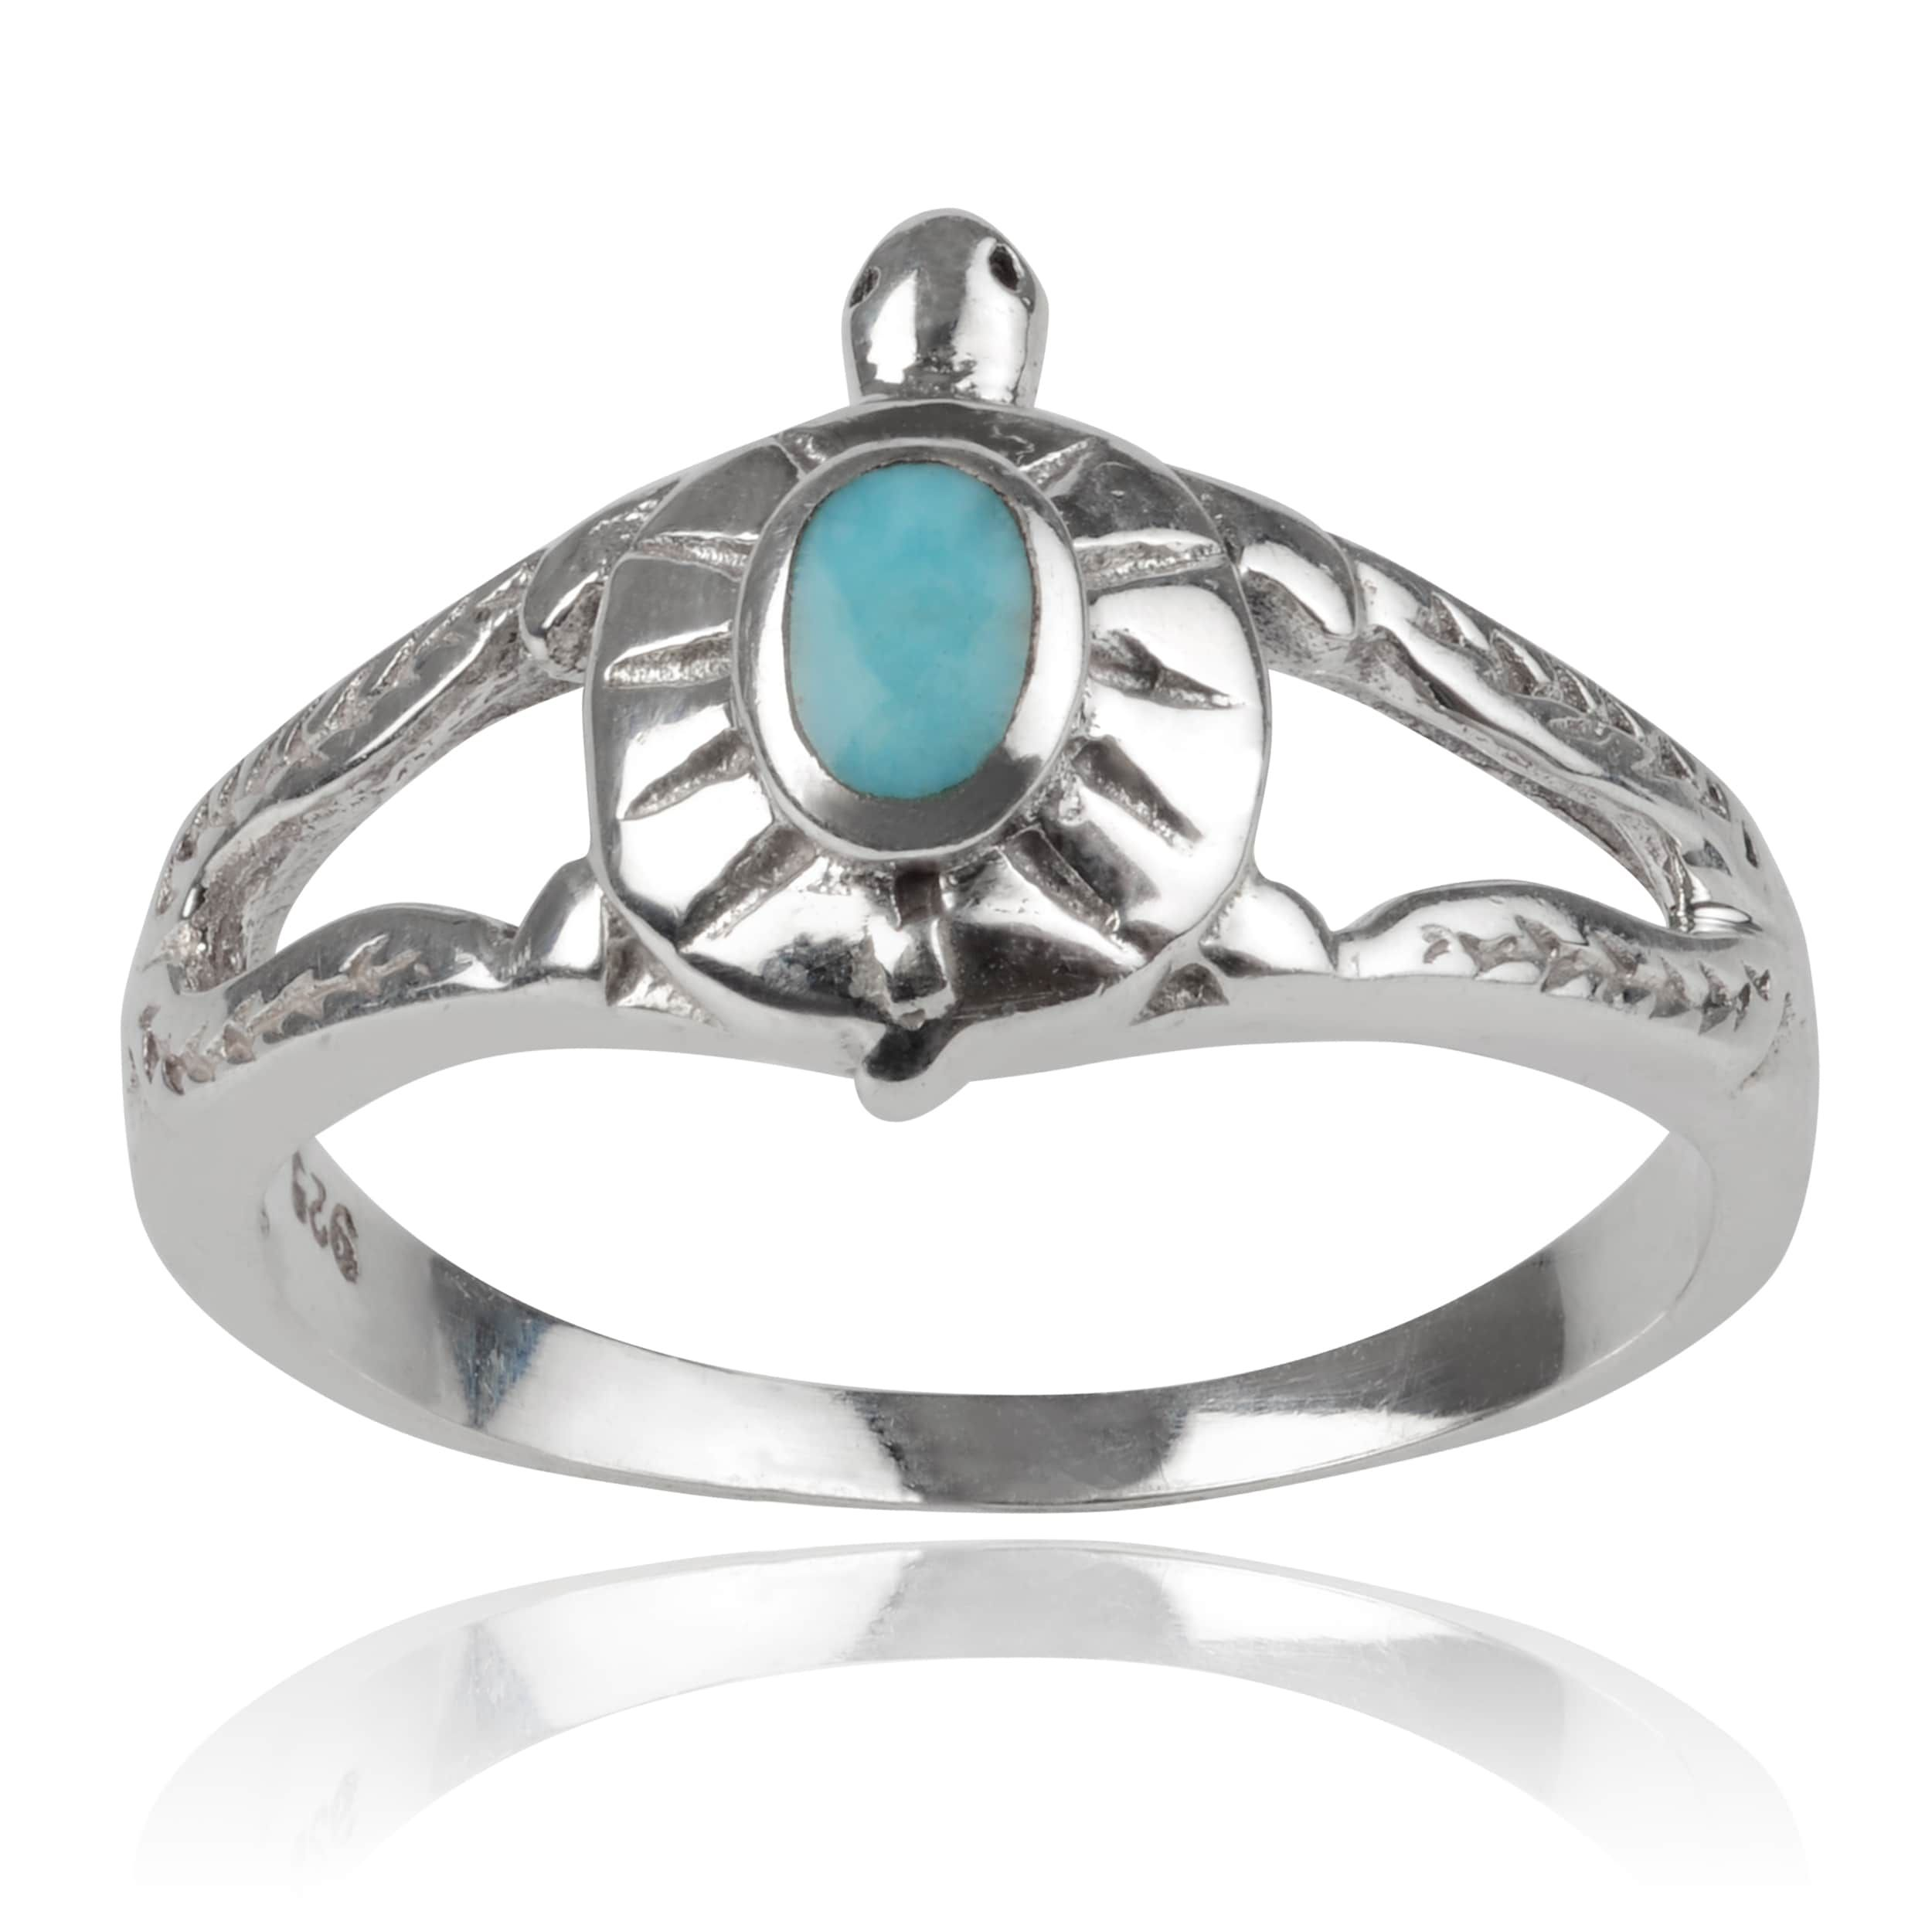 ring on sterling journee silver overstock over free turtle product collection jewelry rings orders watches shipping